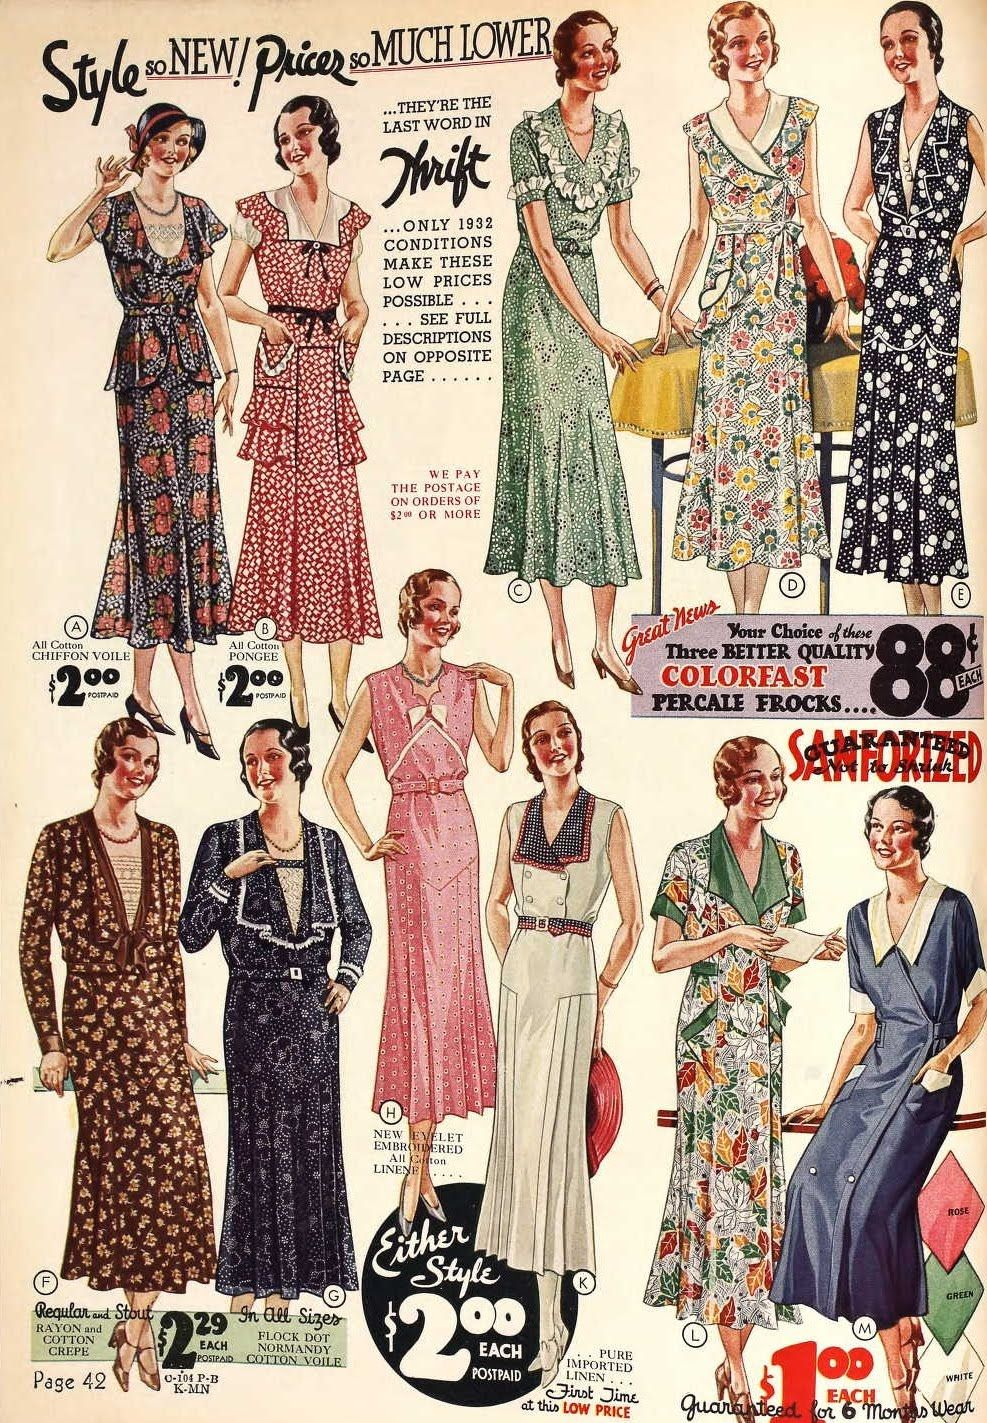 289a2c90790 Vintage Catalog for Dresses in the 1930s